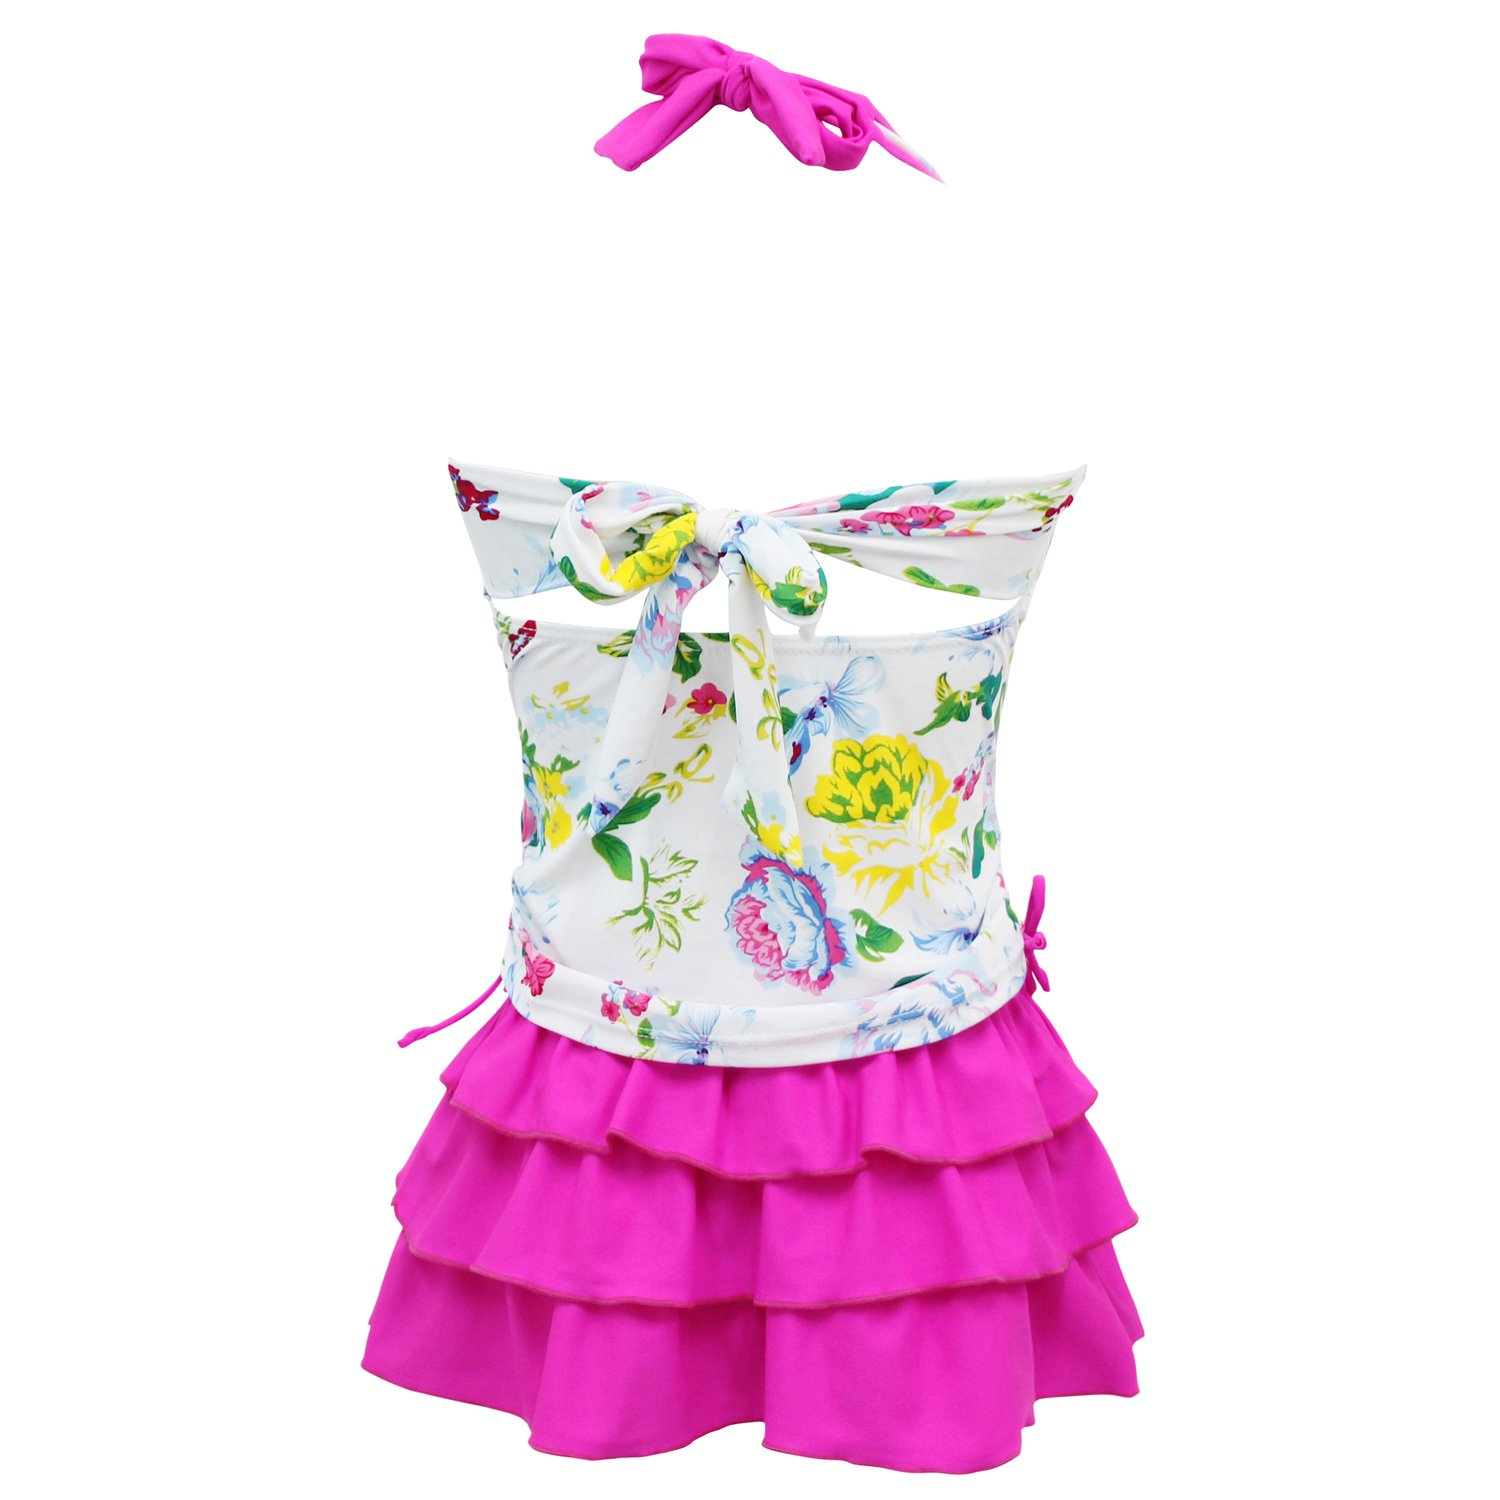 FBA qyqkfly Girls/' 2 Piece 4Y-15Y Florence Adjustable Tankini Swimsuit